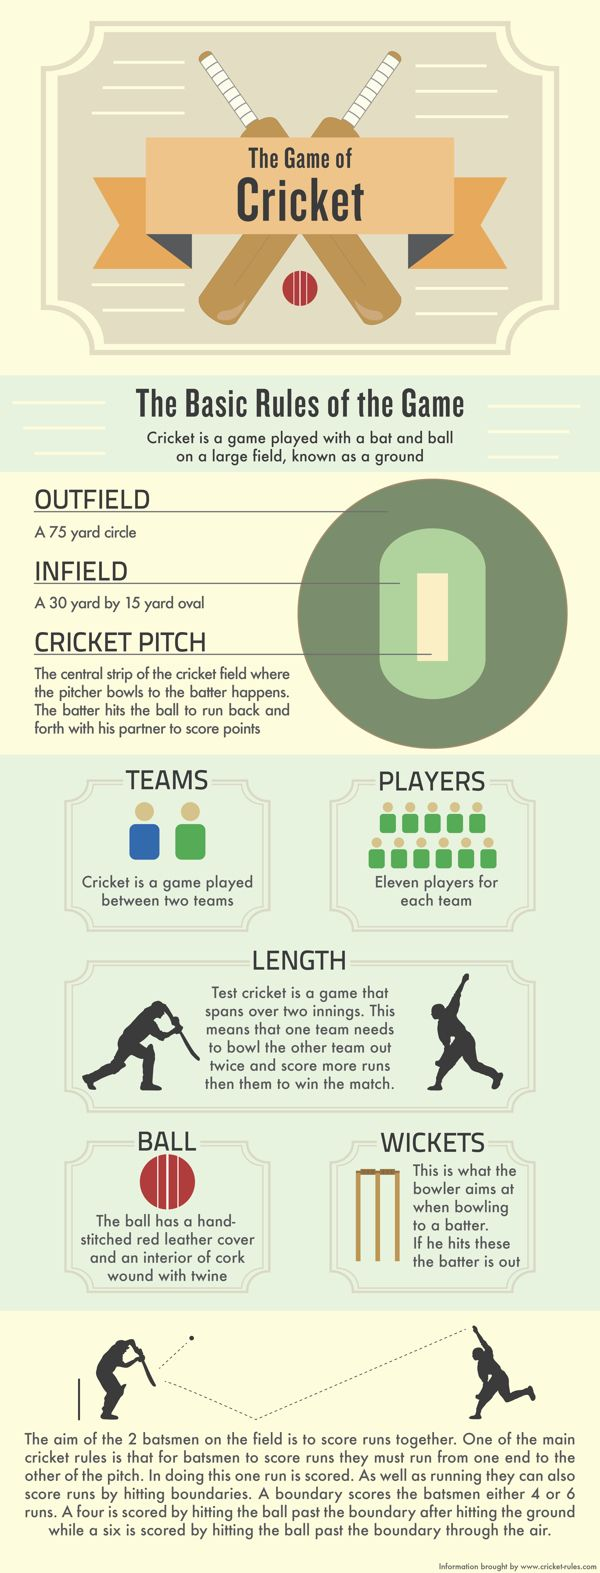 cricket laws and rules pdf